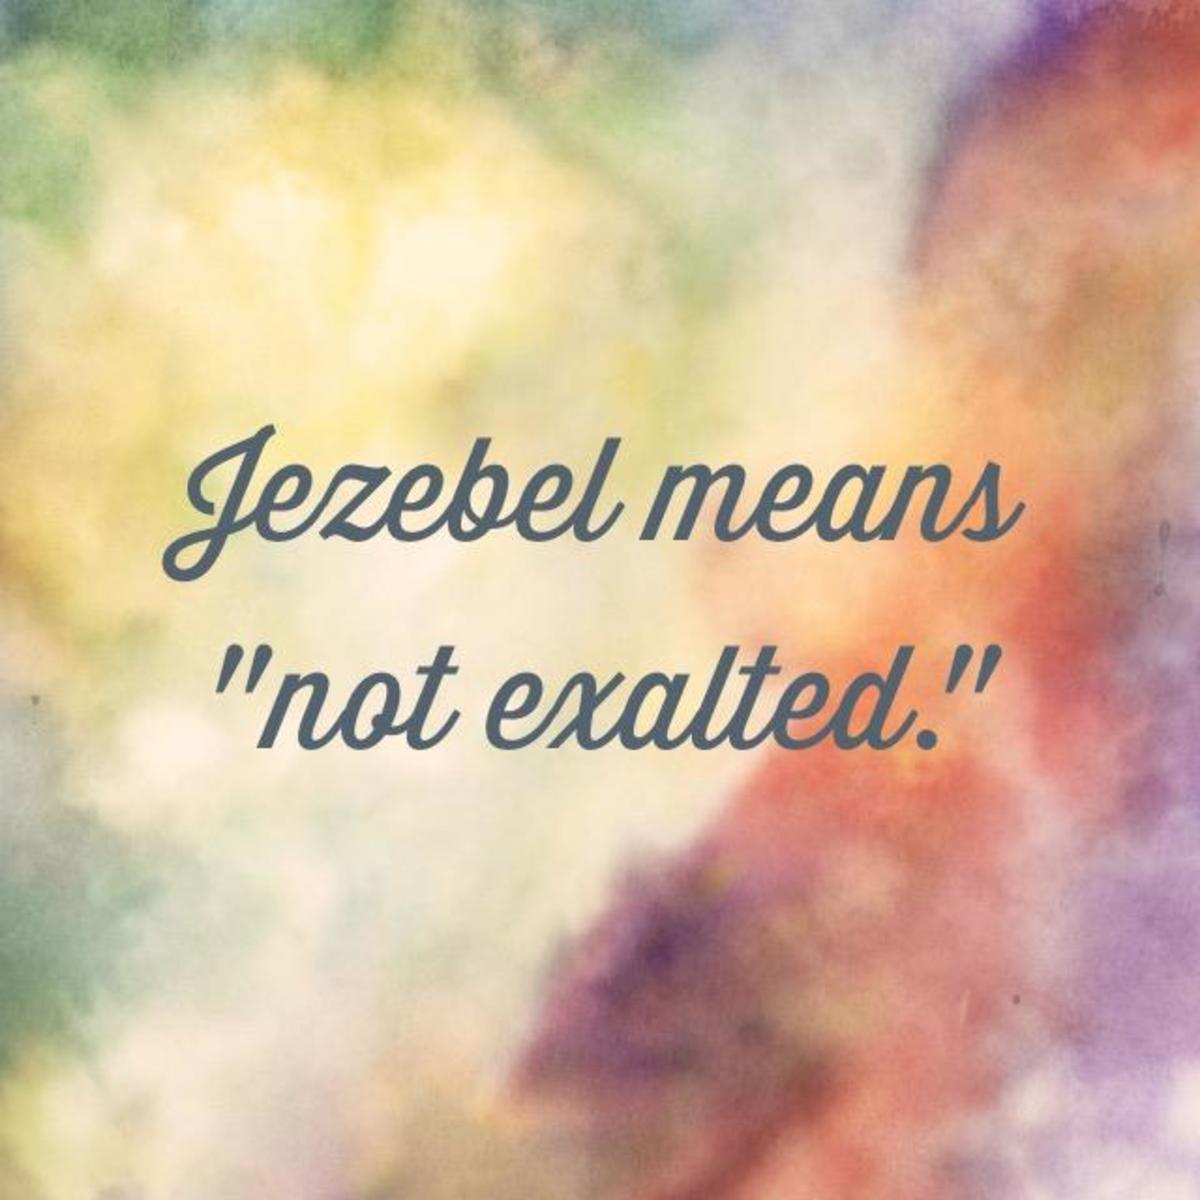 jezebel-and-the-lessons-we-learn-from-her